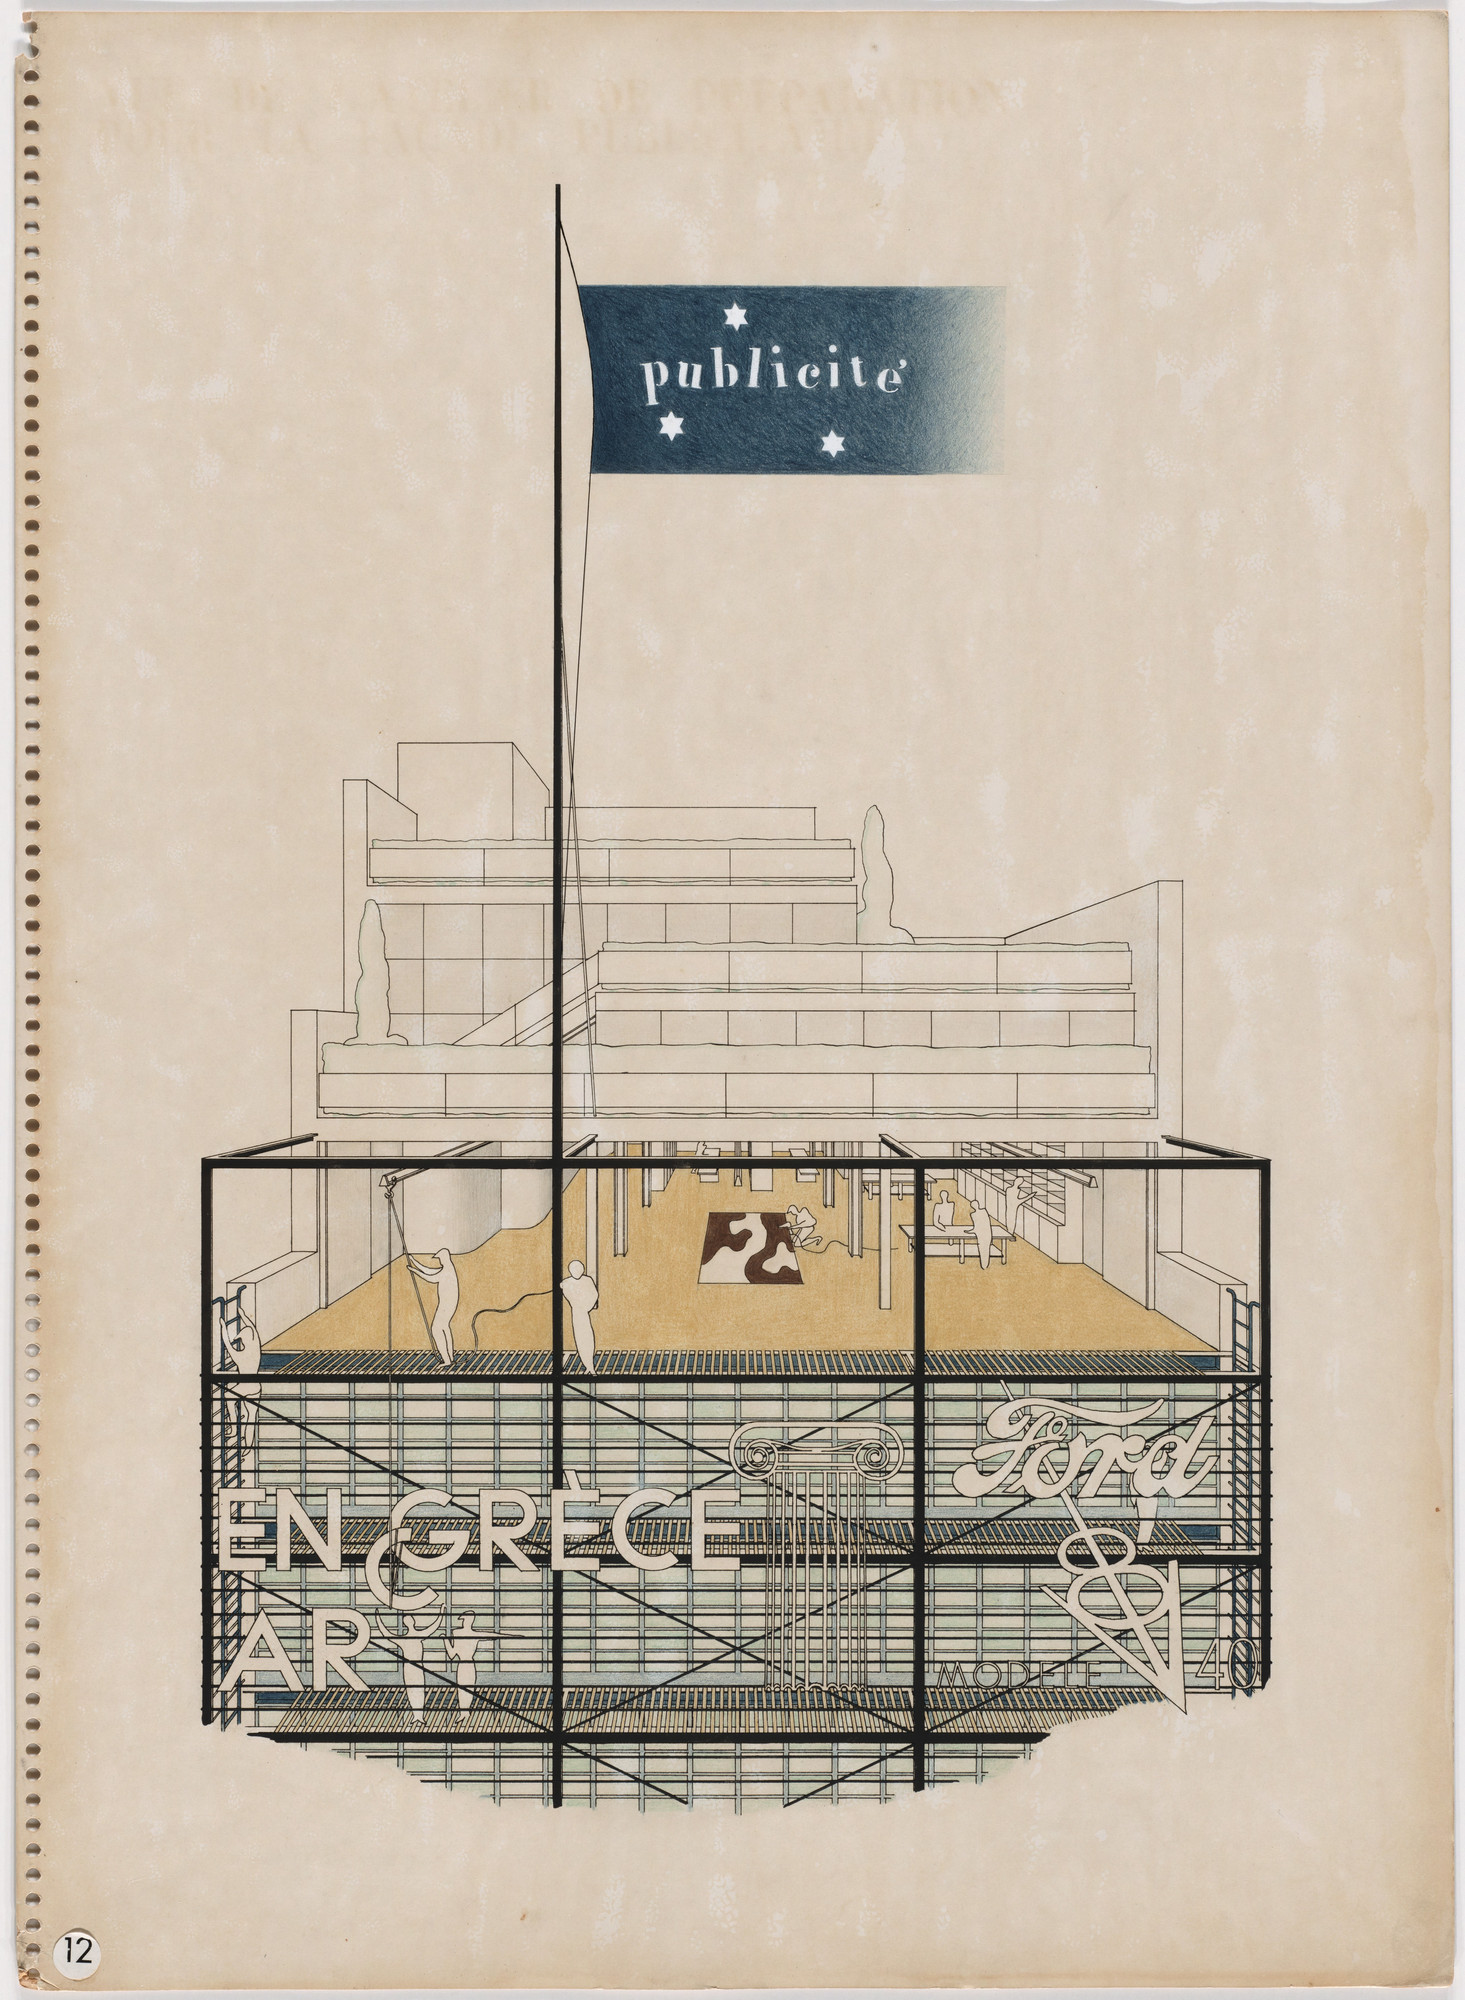 Oscar Nitzchke. Maison de la Publicité Project, Paris, France (Exterior and interior perspective of upper floors and workshop). 1936